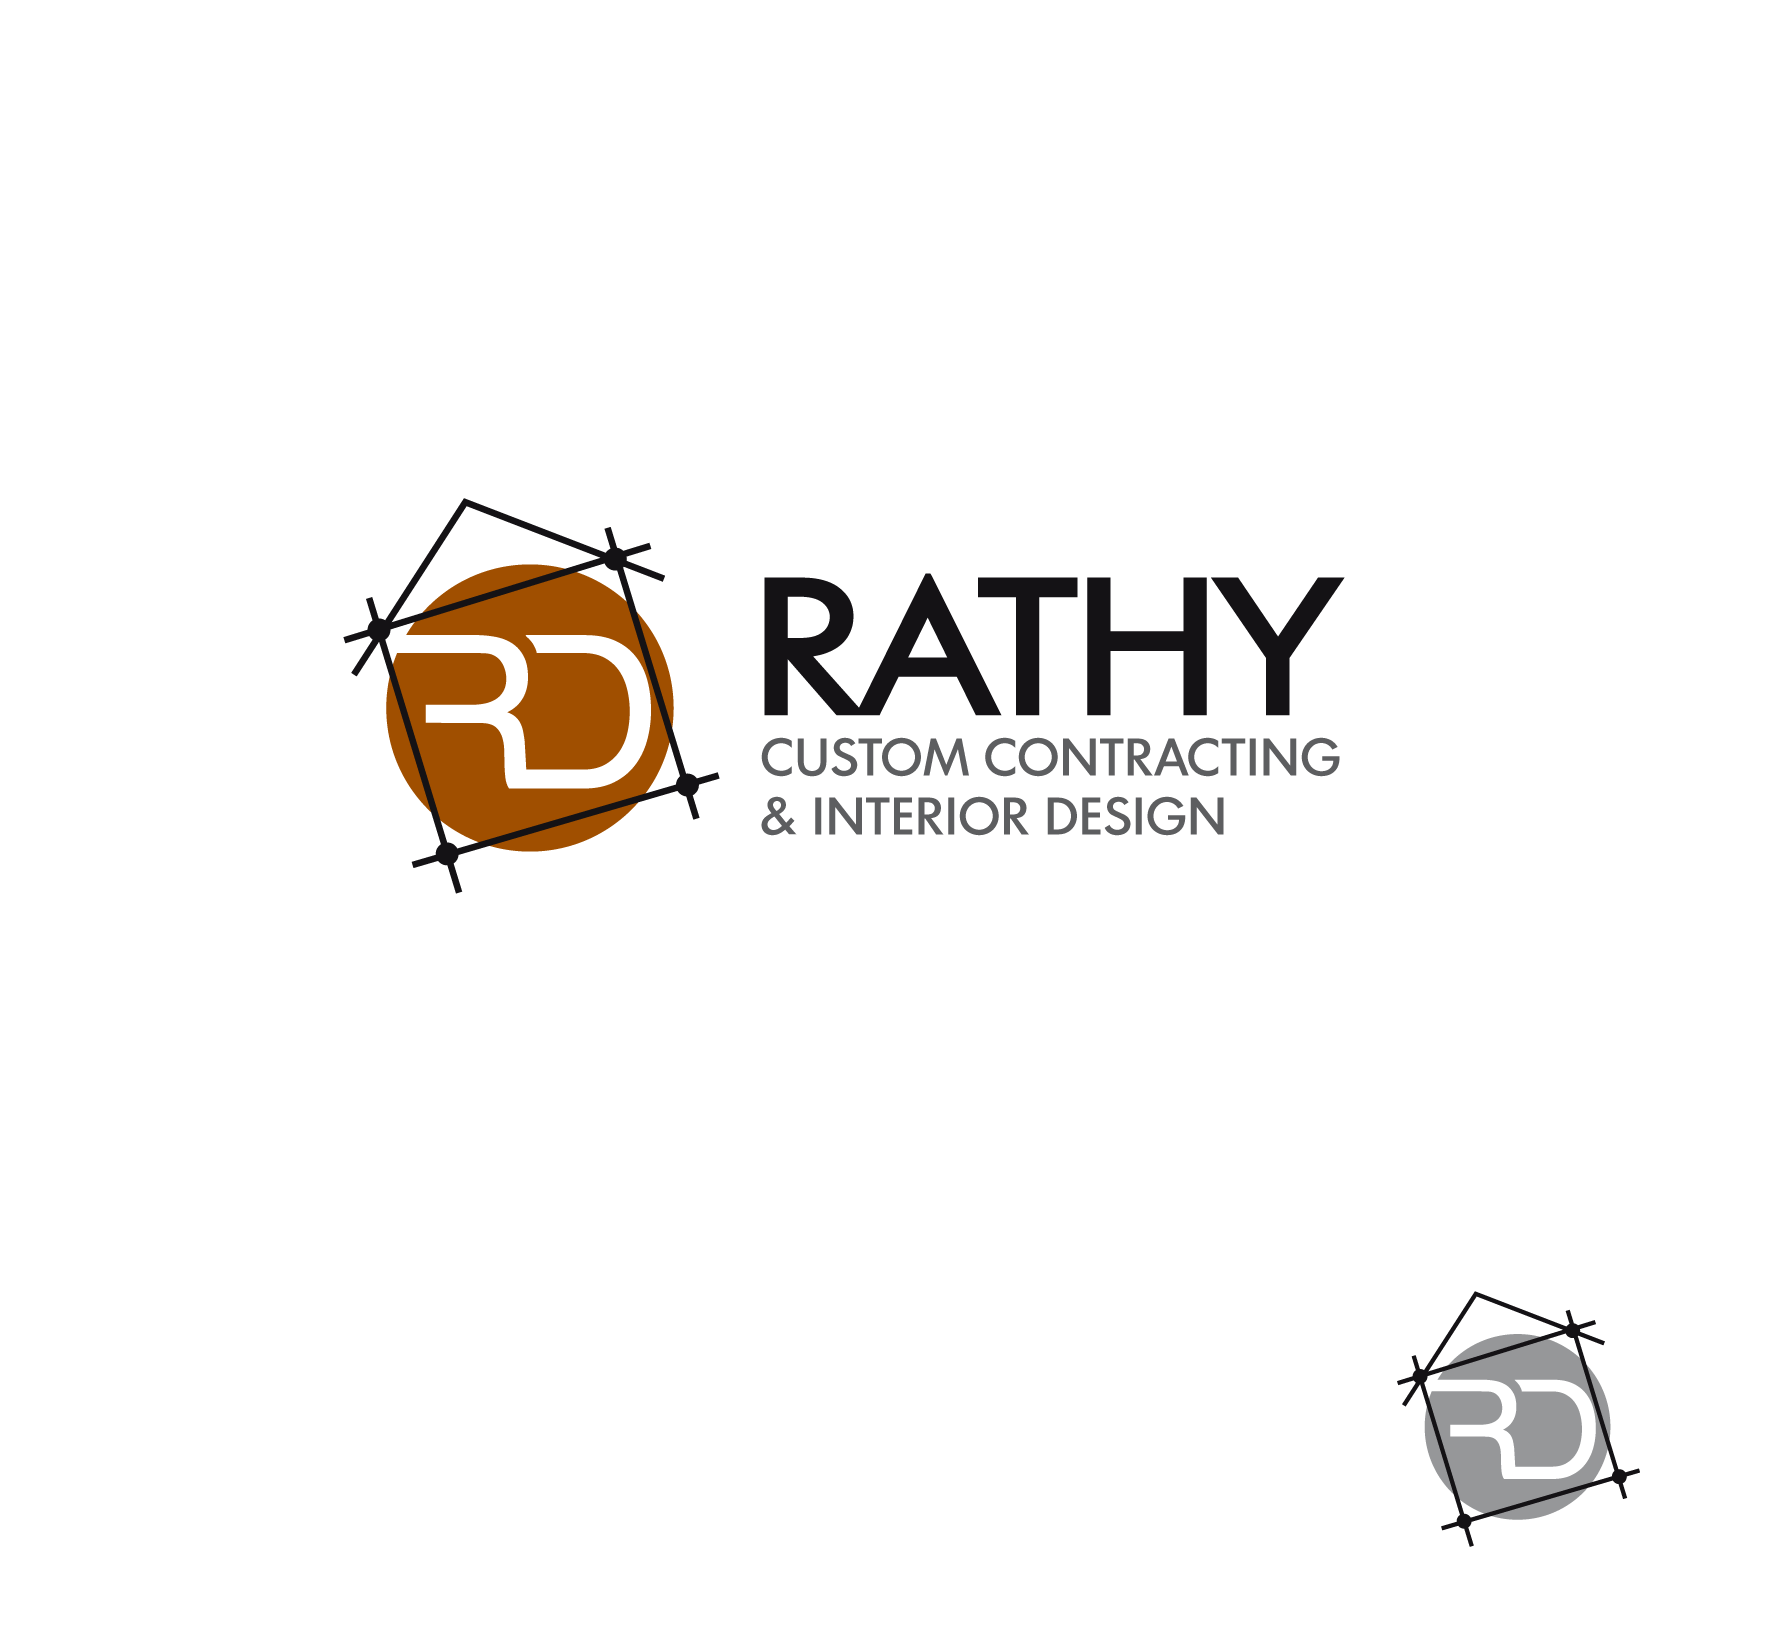 Logo Design by luna - Entry No. 81 in the Logo Design Contest Logo Design Needed for Exciting New Company Rathy Custom Contracting & Interior Design.